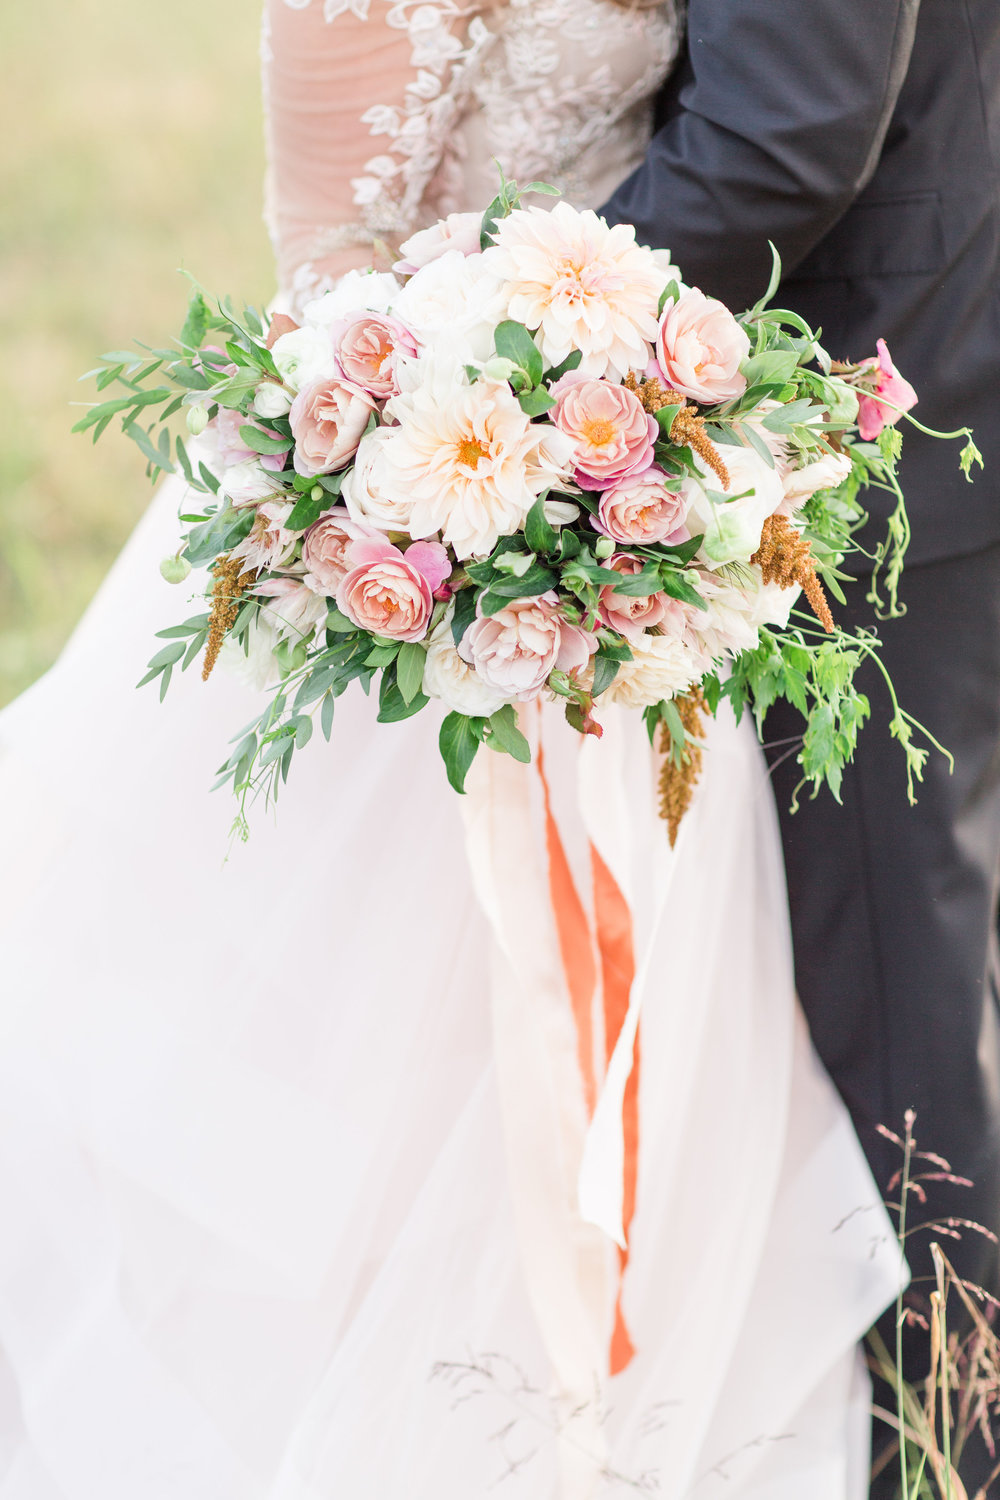 Courtney Inghram Katelyn James Photography Richmond Virginia Wedding Florist Katelyn James Photography